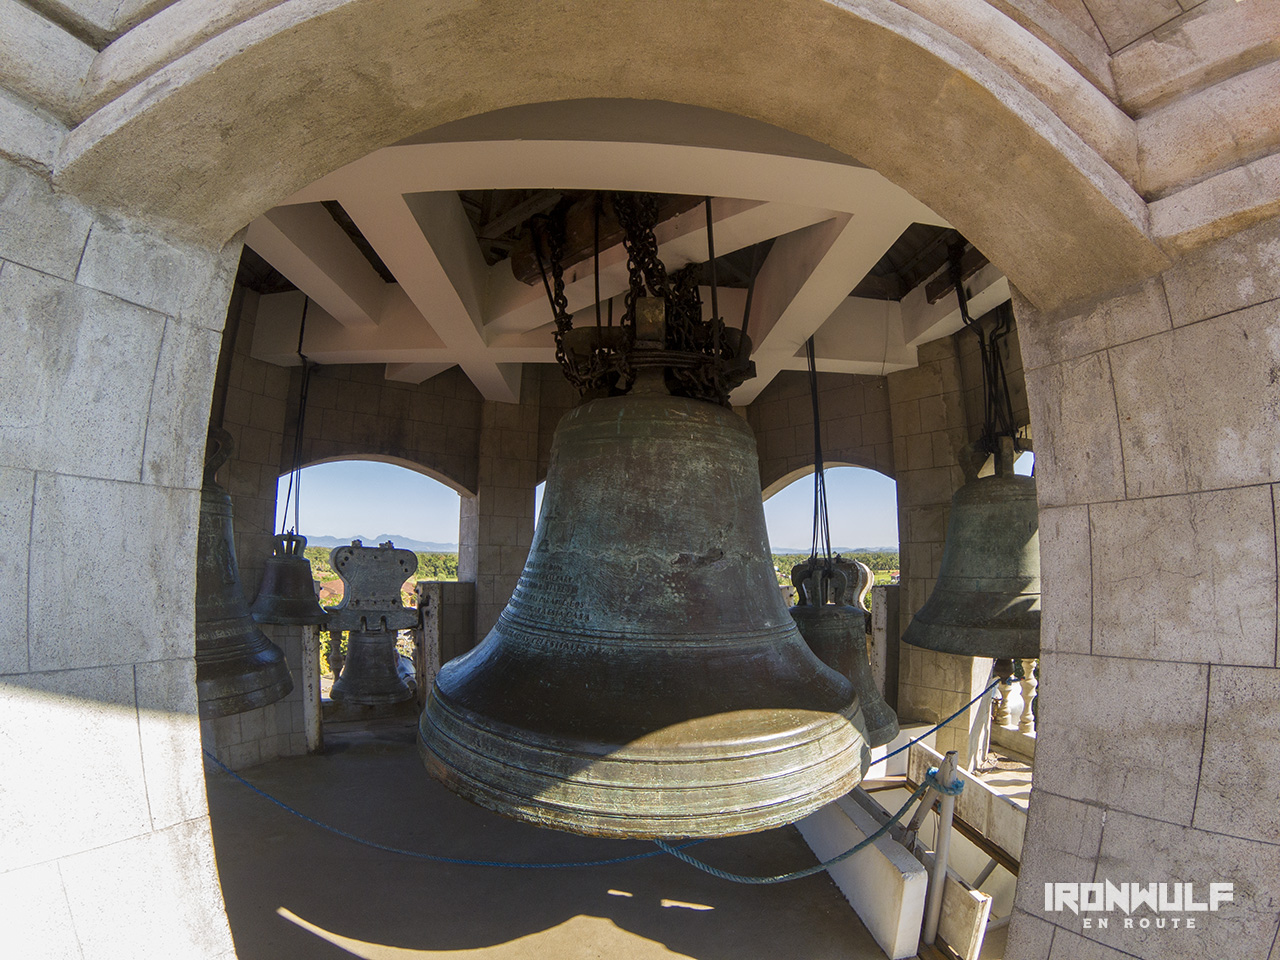 The Dakong Lingganay, the biggest church bell in Asia